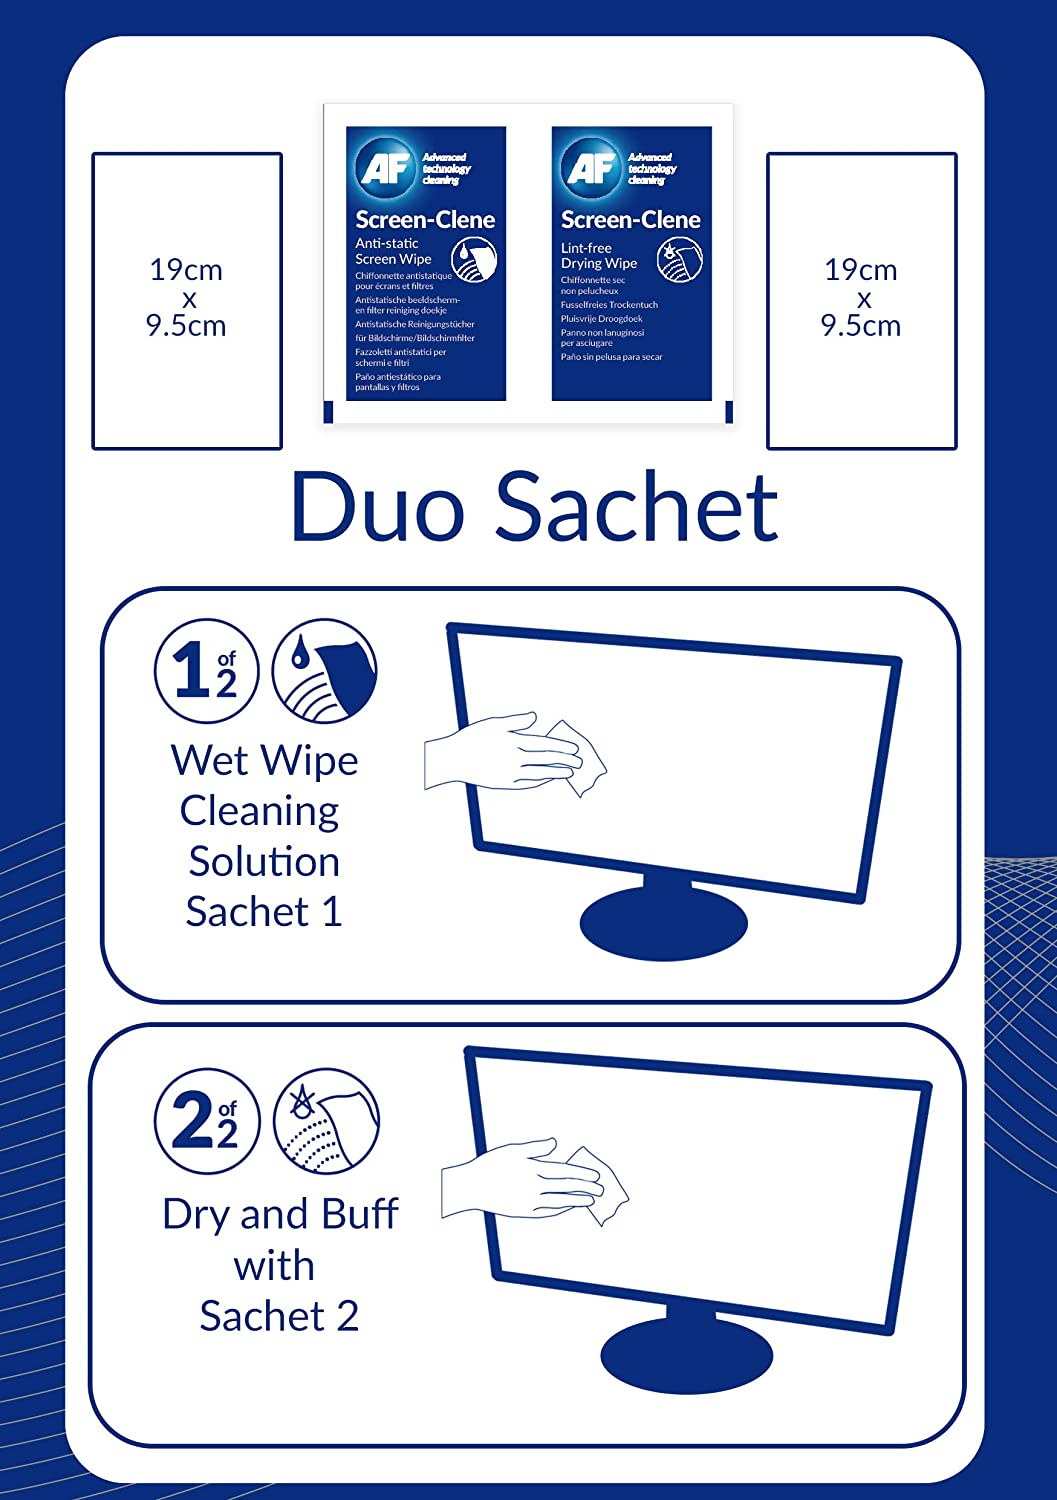 Amazon.com: AF Screen-Clene Duo - Reinigungstücher (Wipes) (Packung mit 20) : Kitchen & Dining